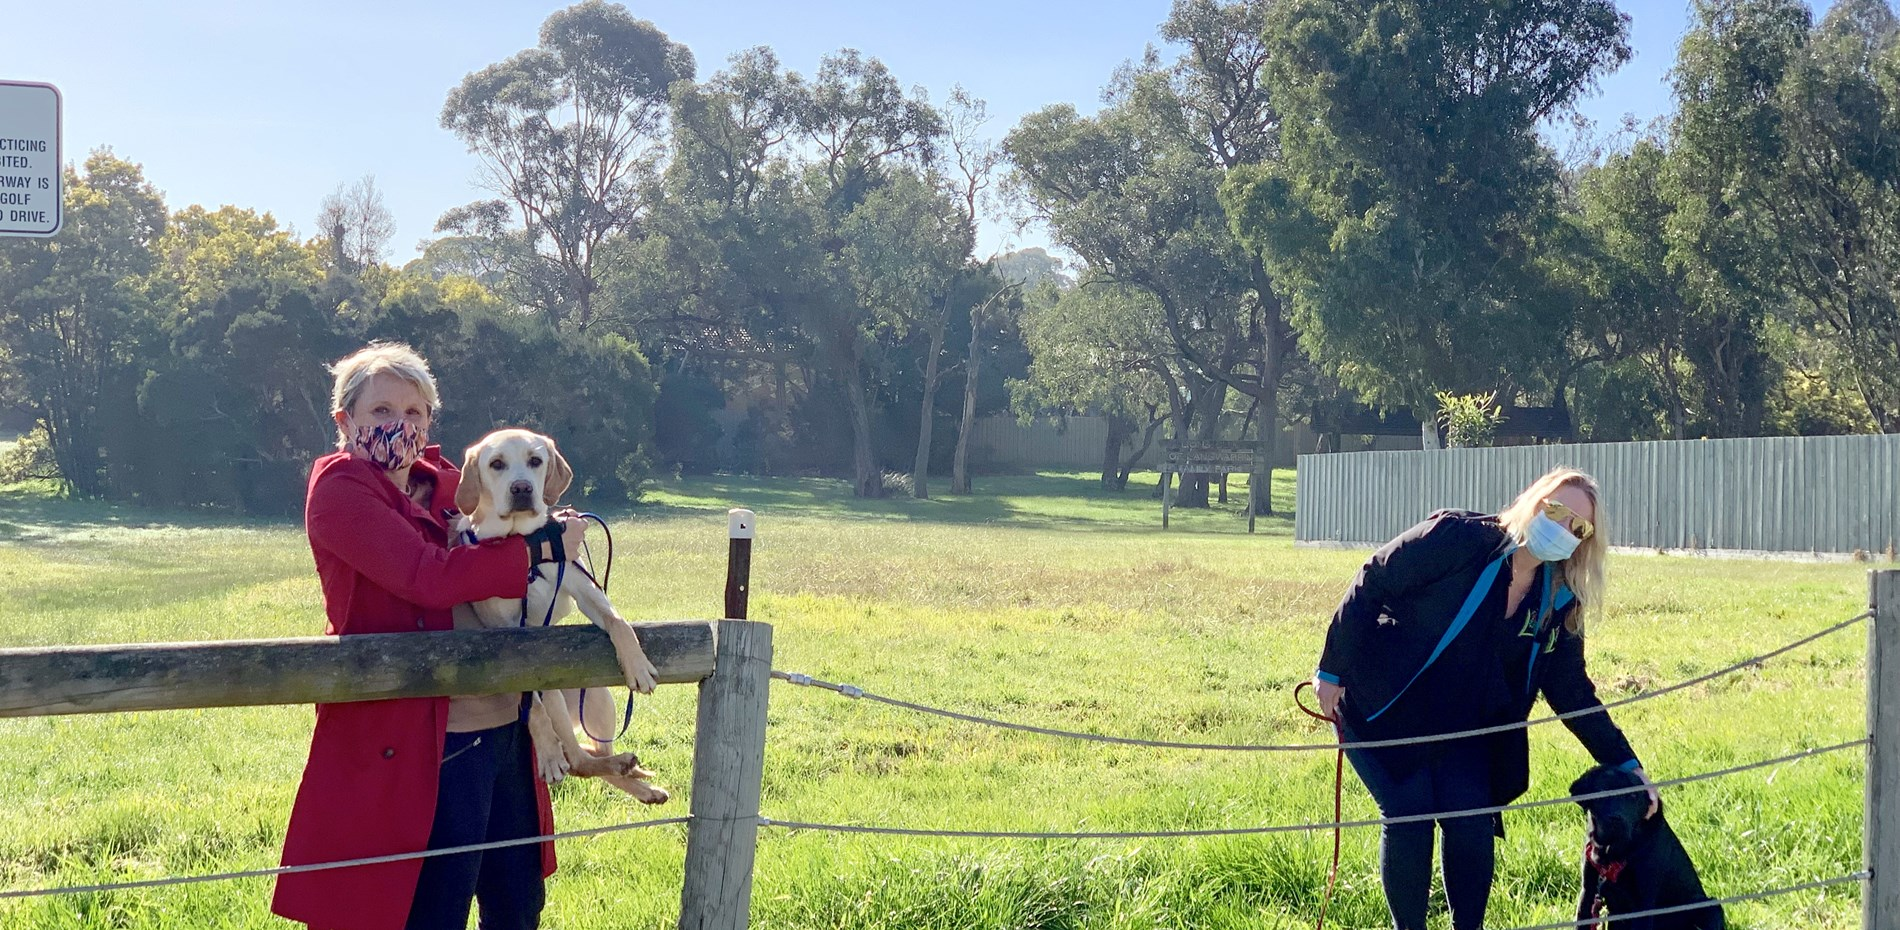 MEDIA RELEASE - NEW ENCLOSED DOG PARK FOR LANGWARRIN - 1 AUGUST 2020 Main Image